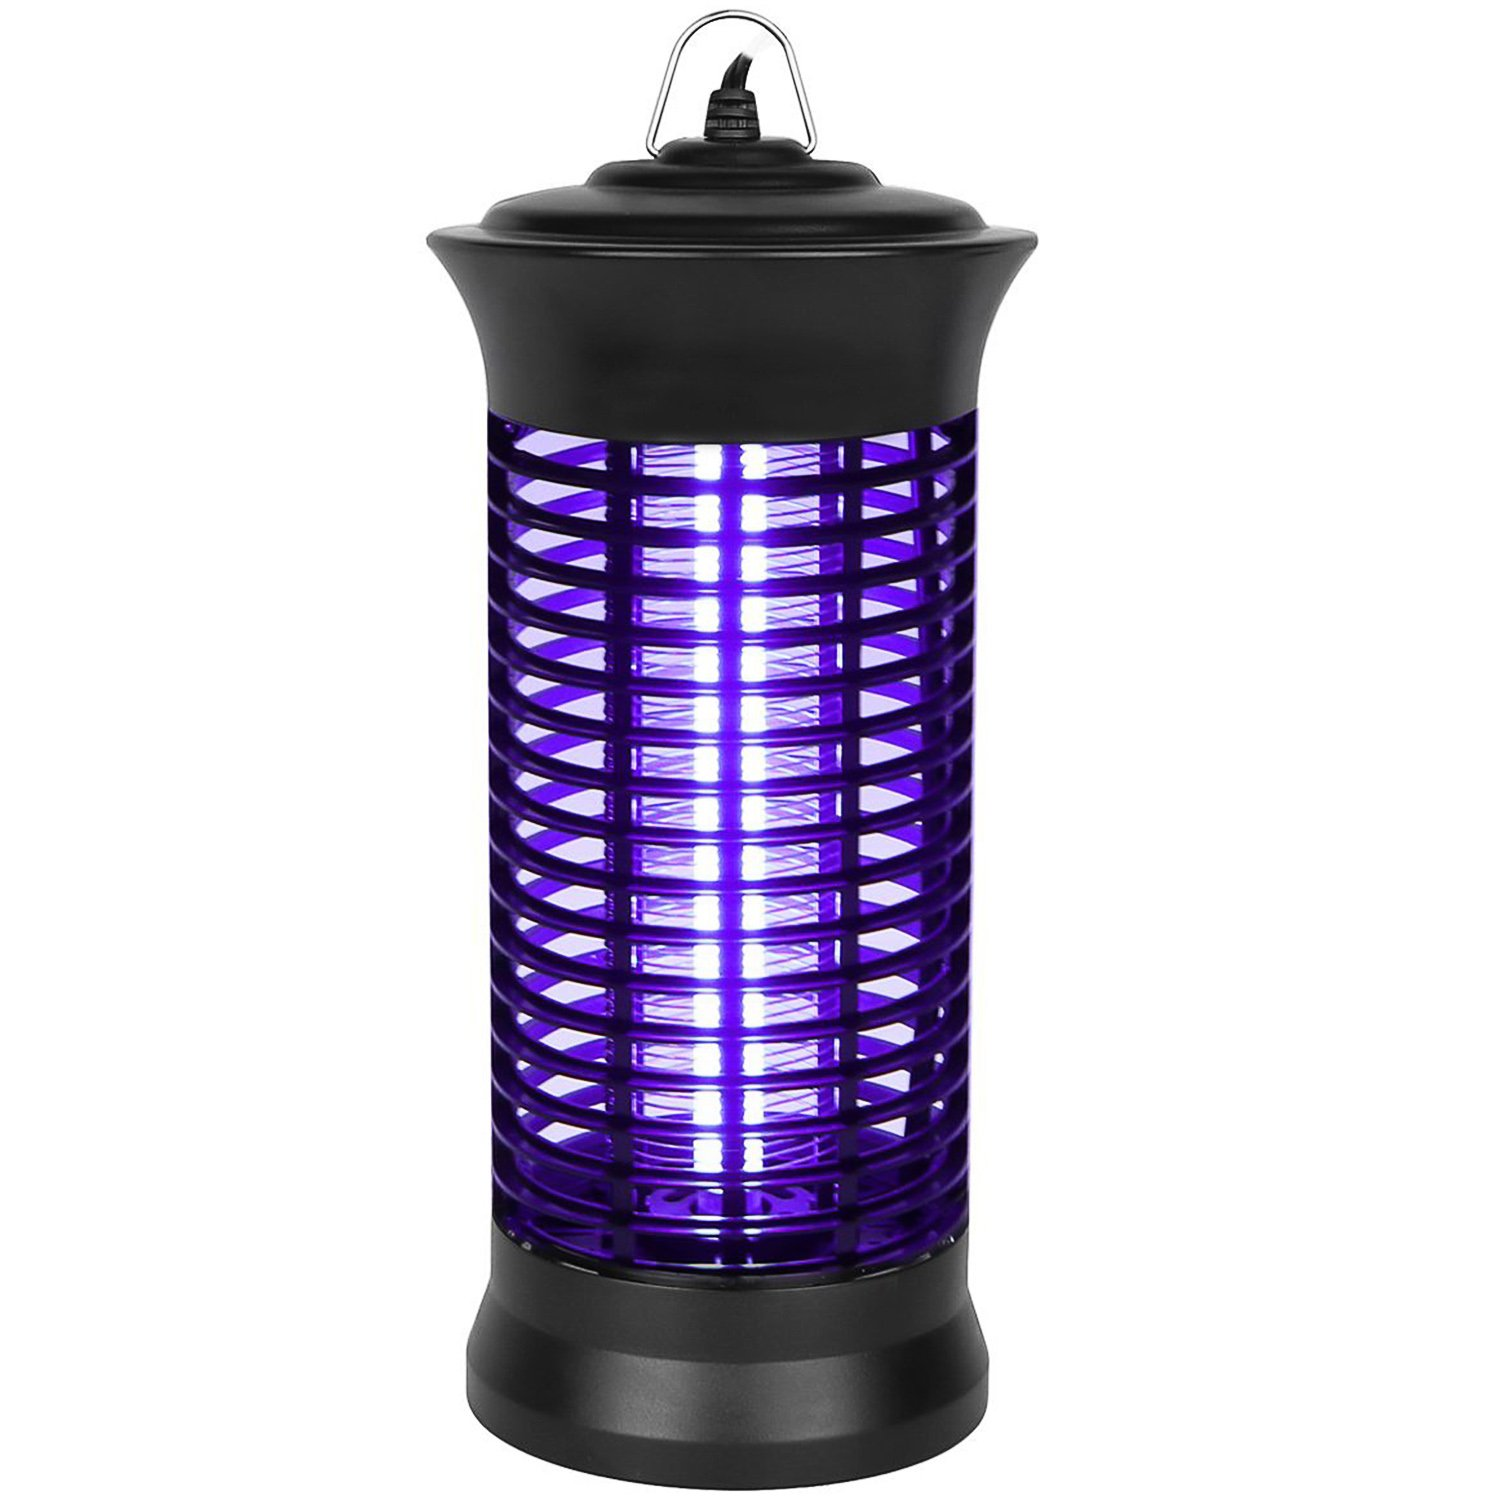 Ihomepark Electric Bug Zapper, Mosquito Insect Killer, Fly Zapper Catcher, UV Pest Trap for Indoor Home Office Patio Backyard Camping & Hiking